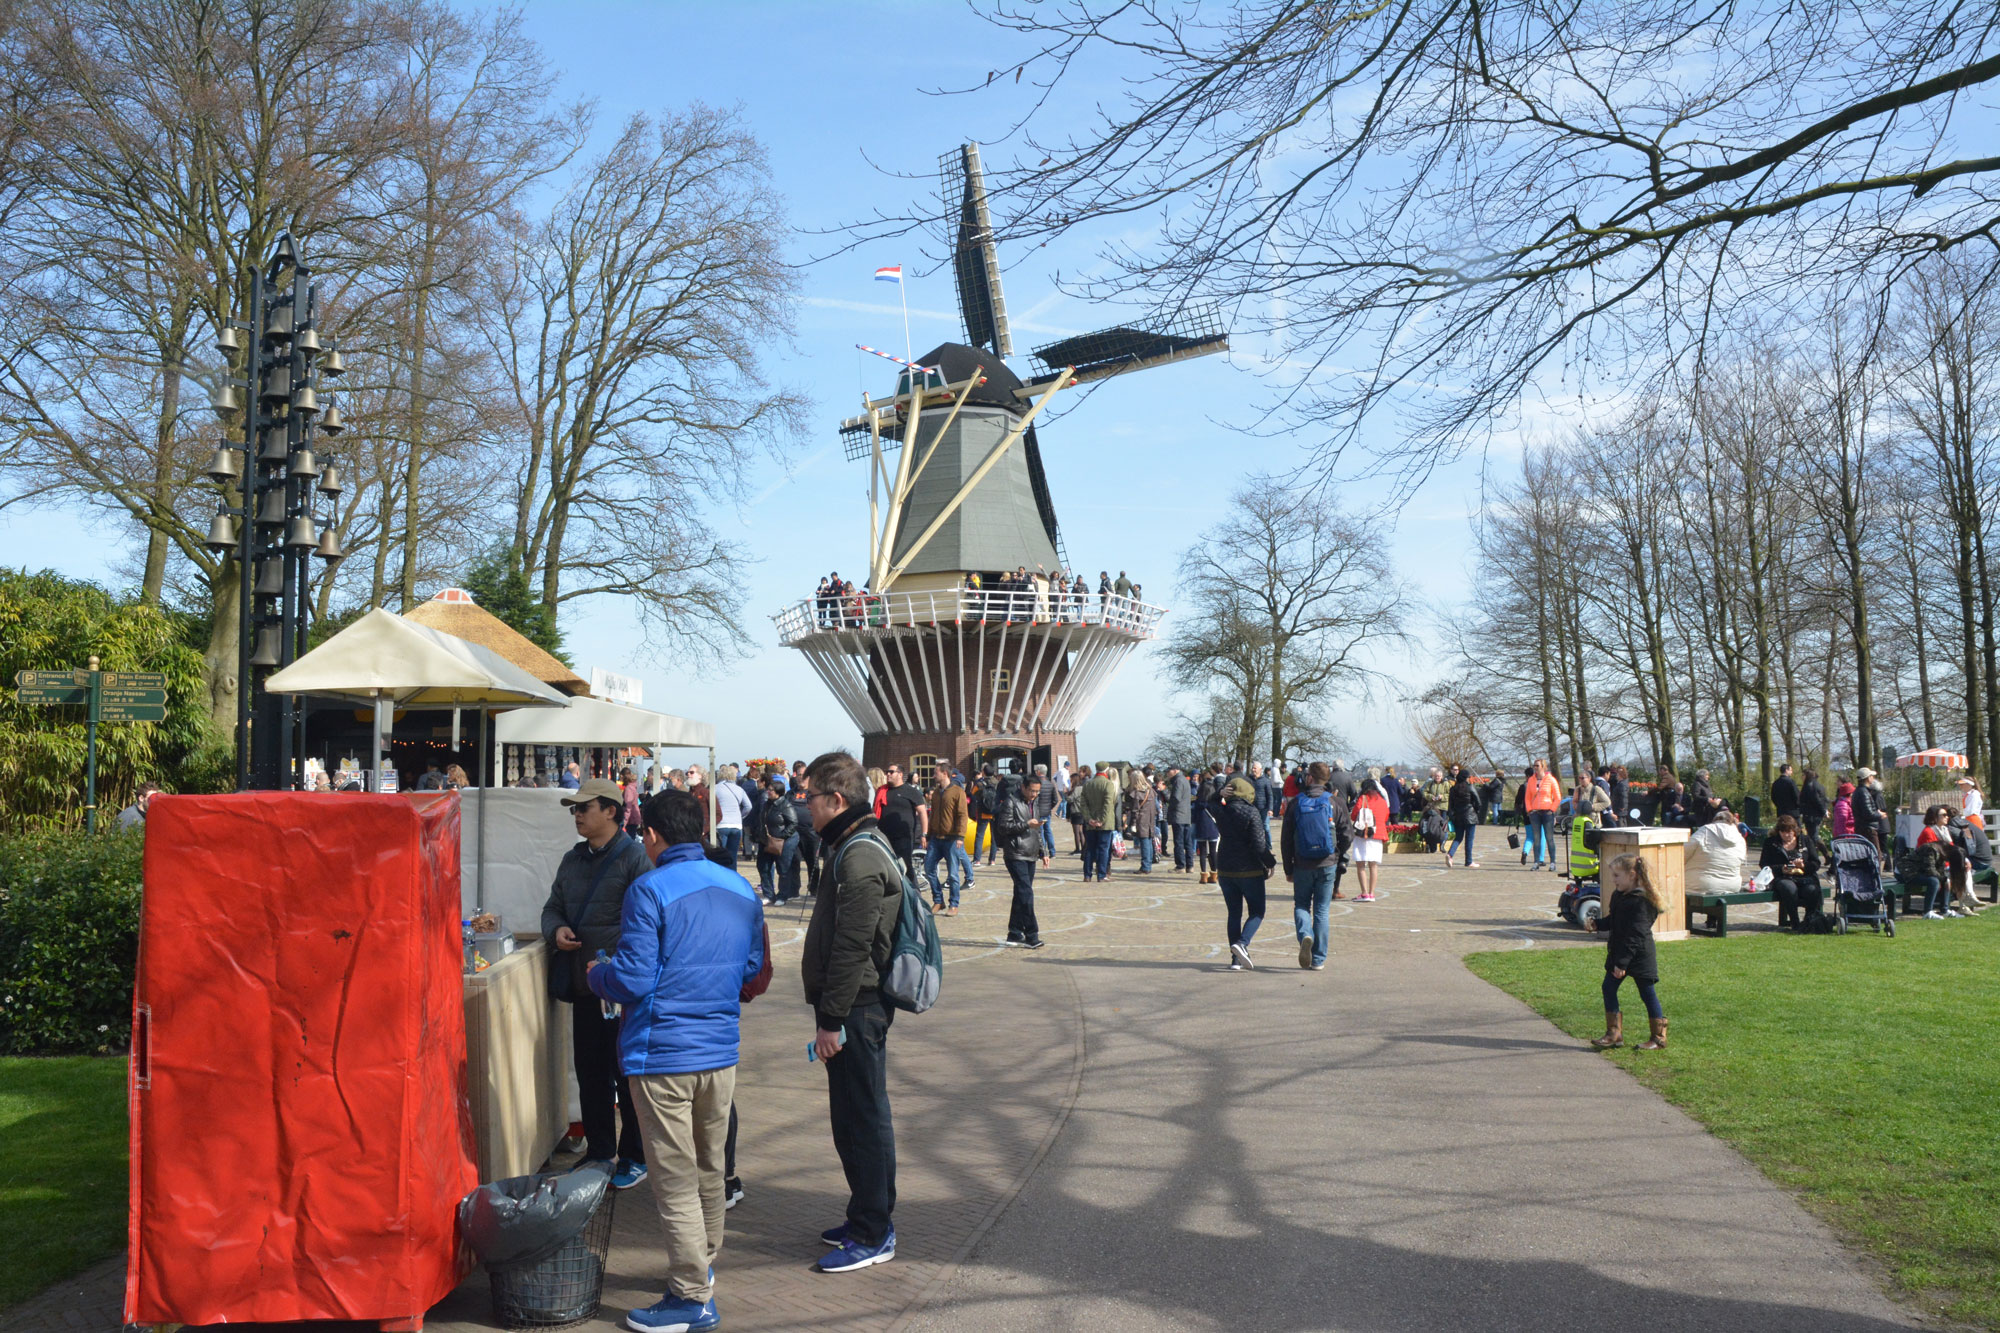 inrichting en corona in recreatie